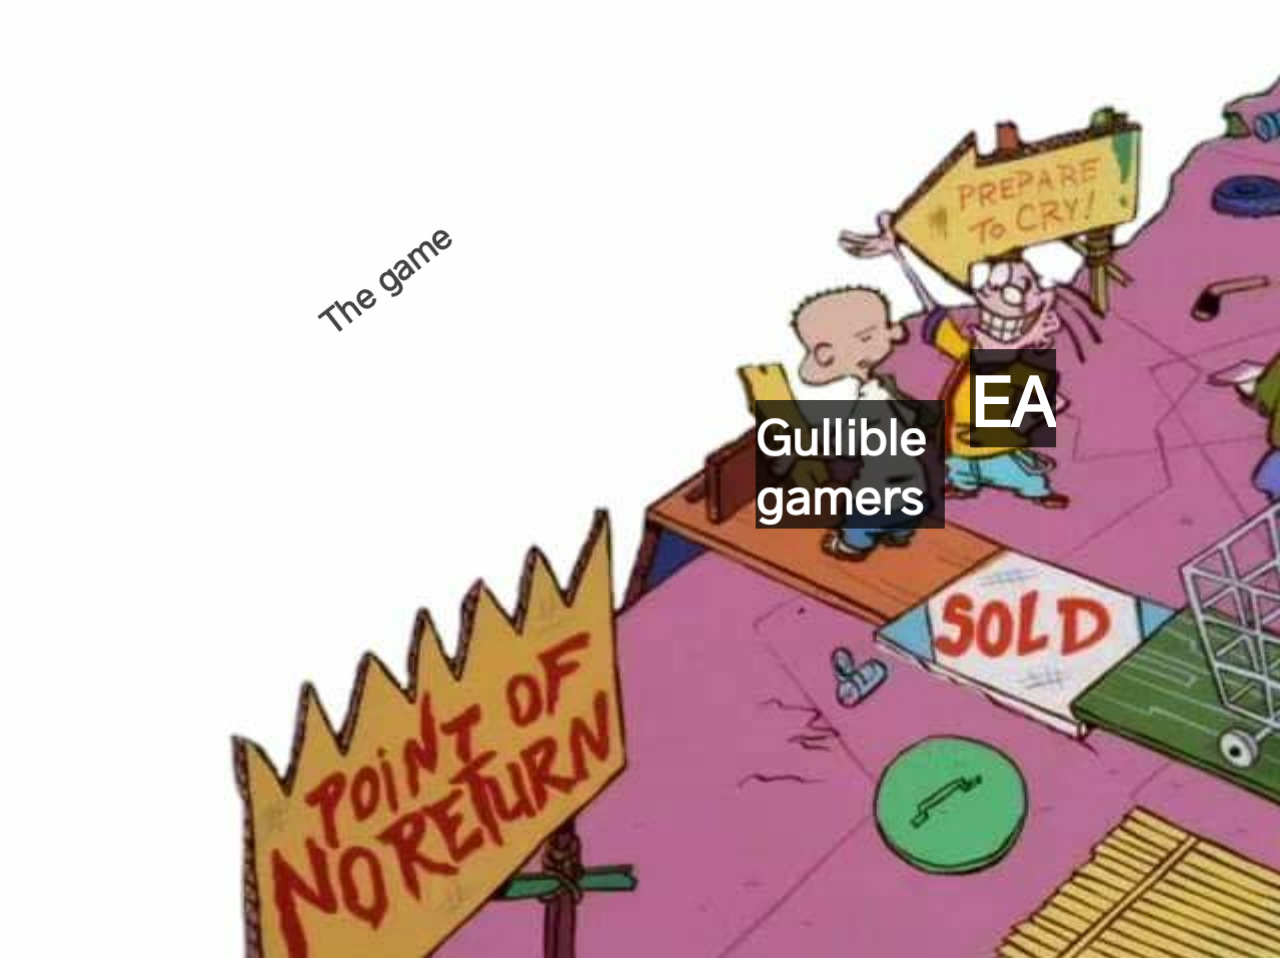 Why do you keep buying their games? - meme